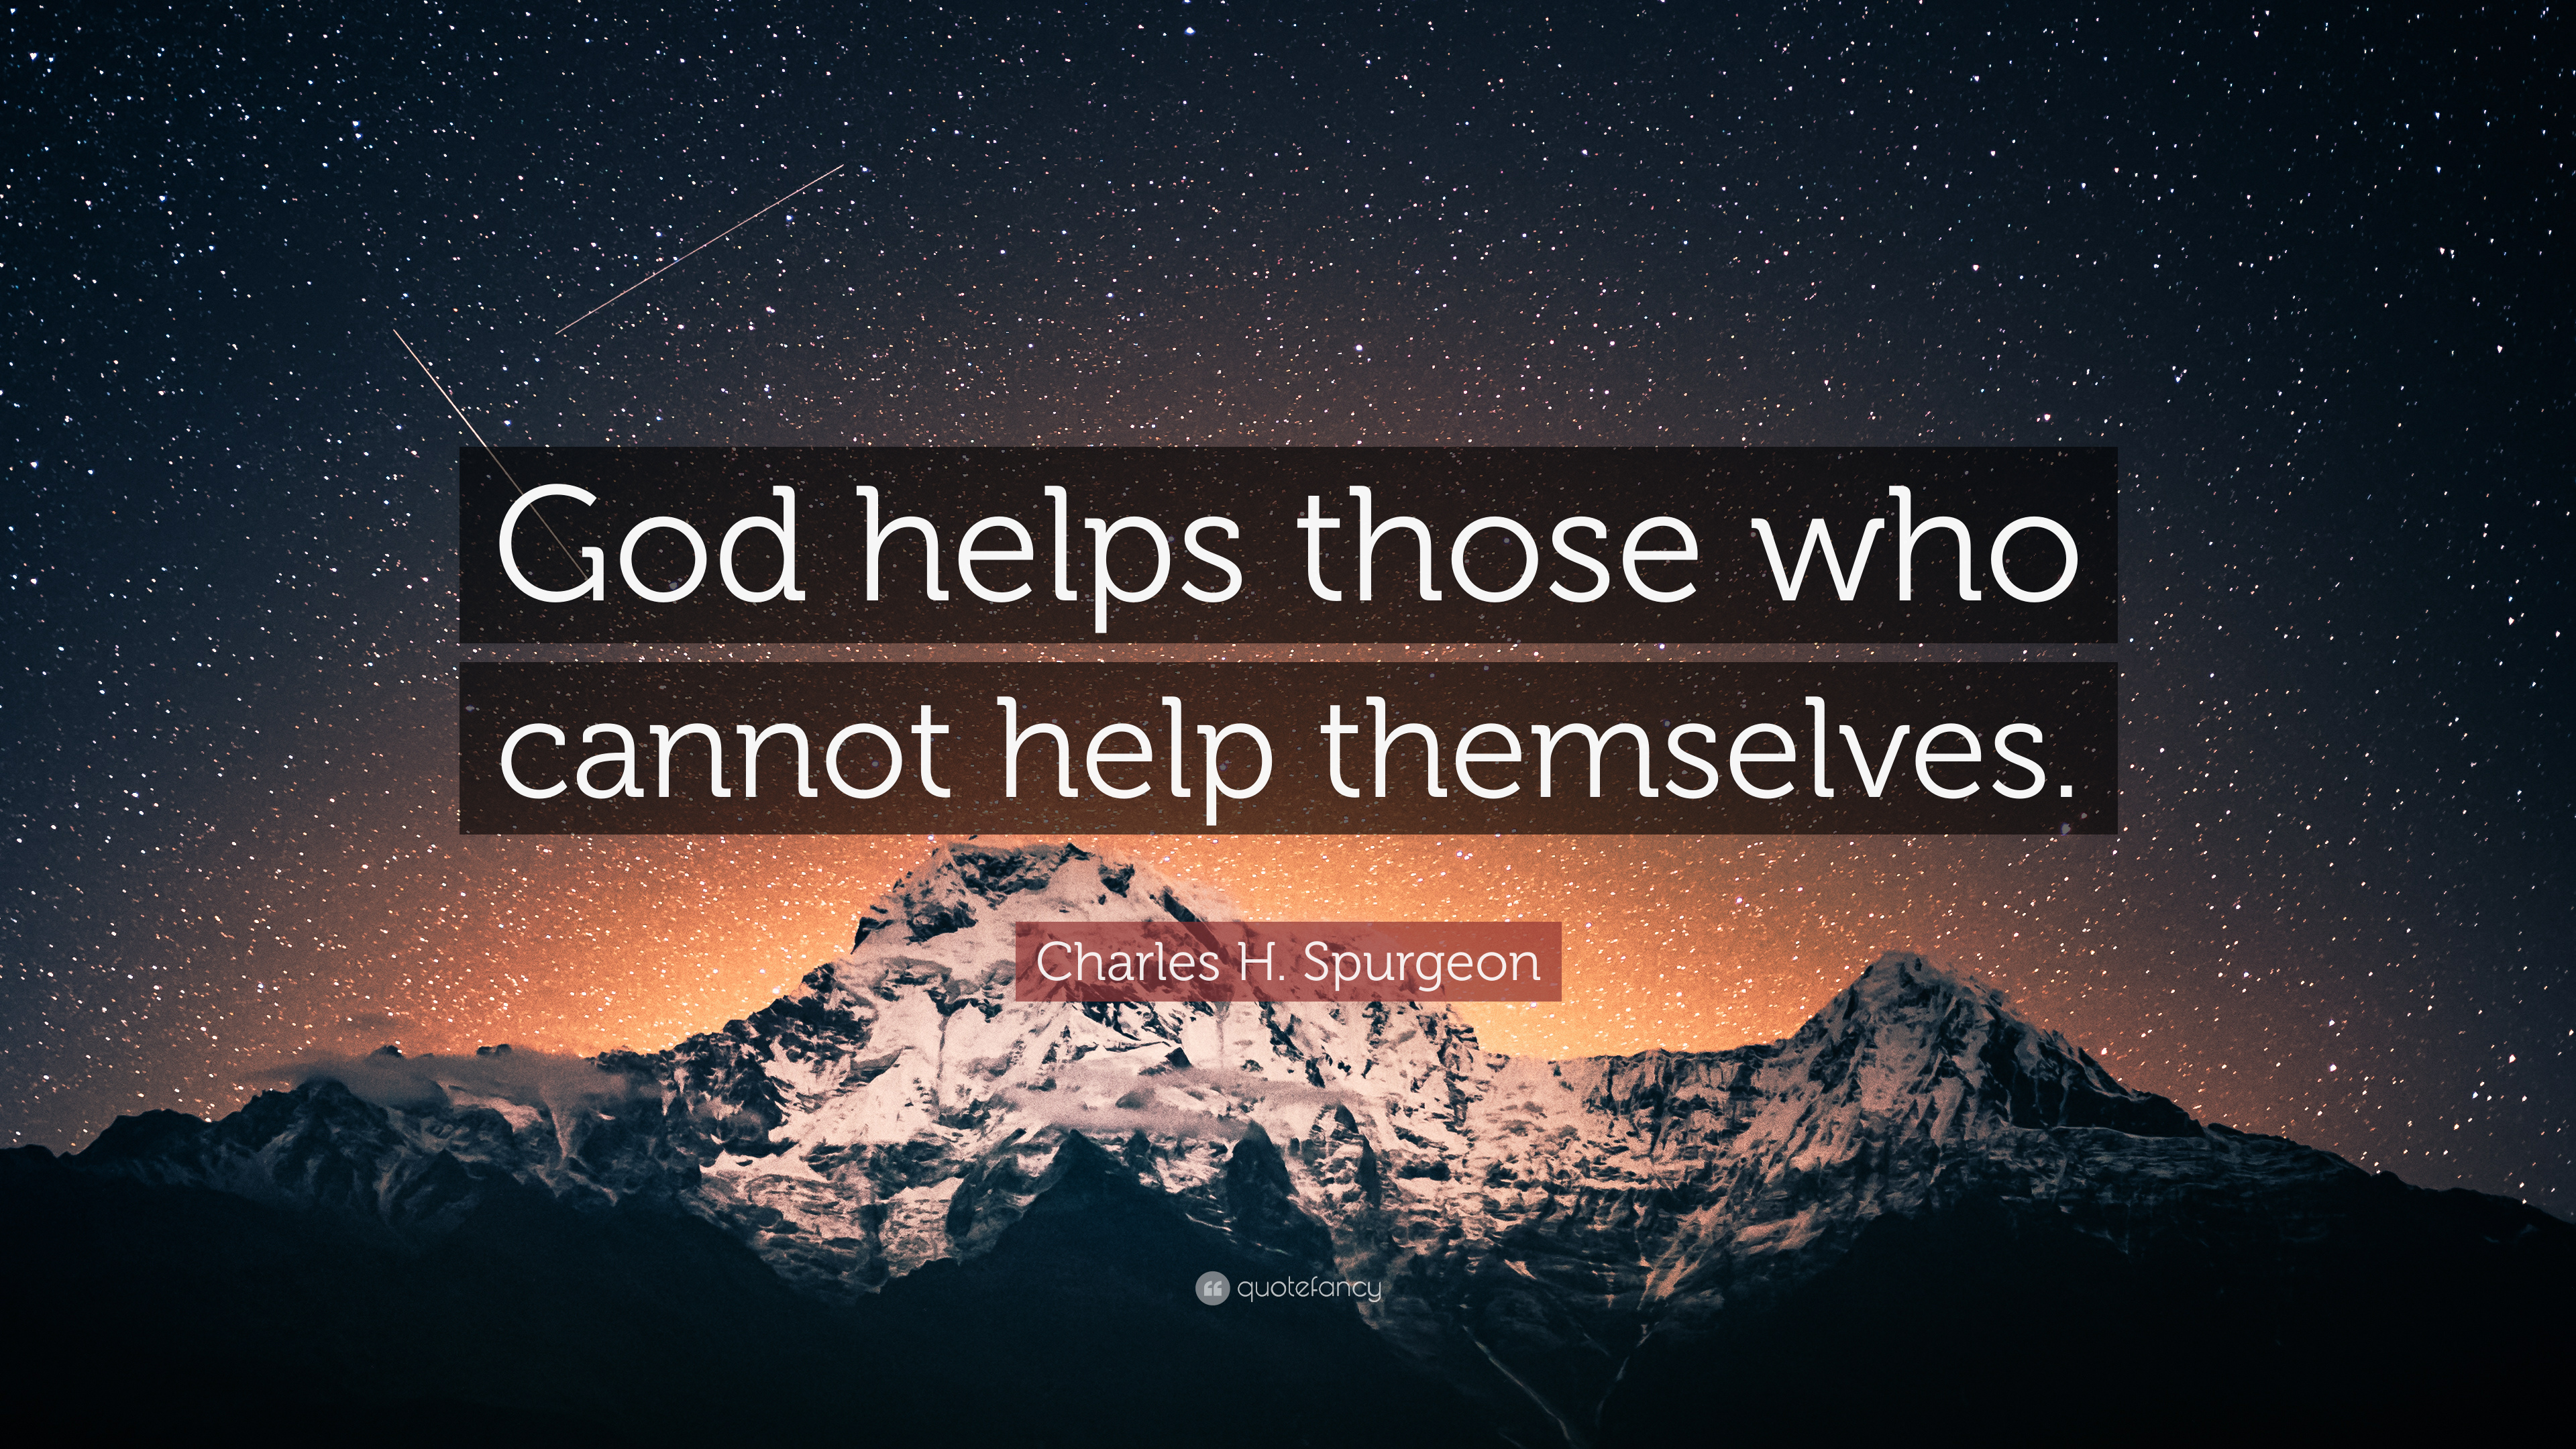 Essay on proverb god helps those who help themselves